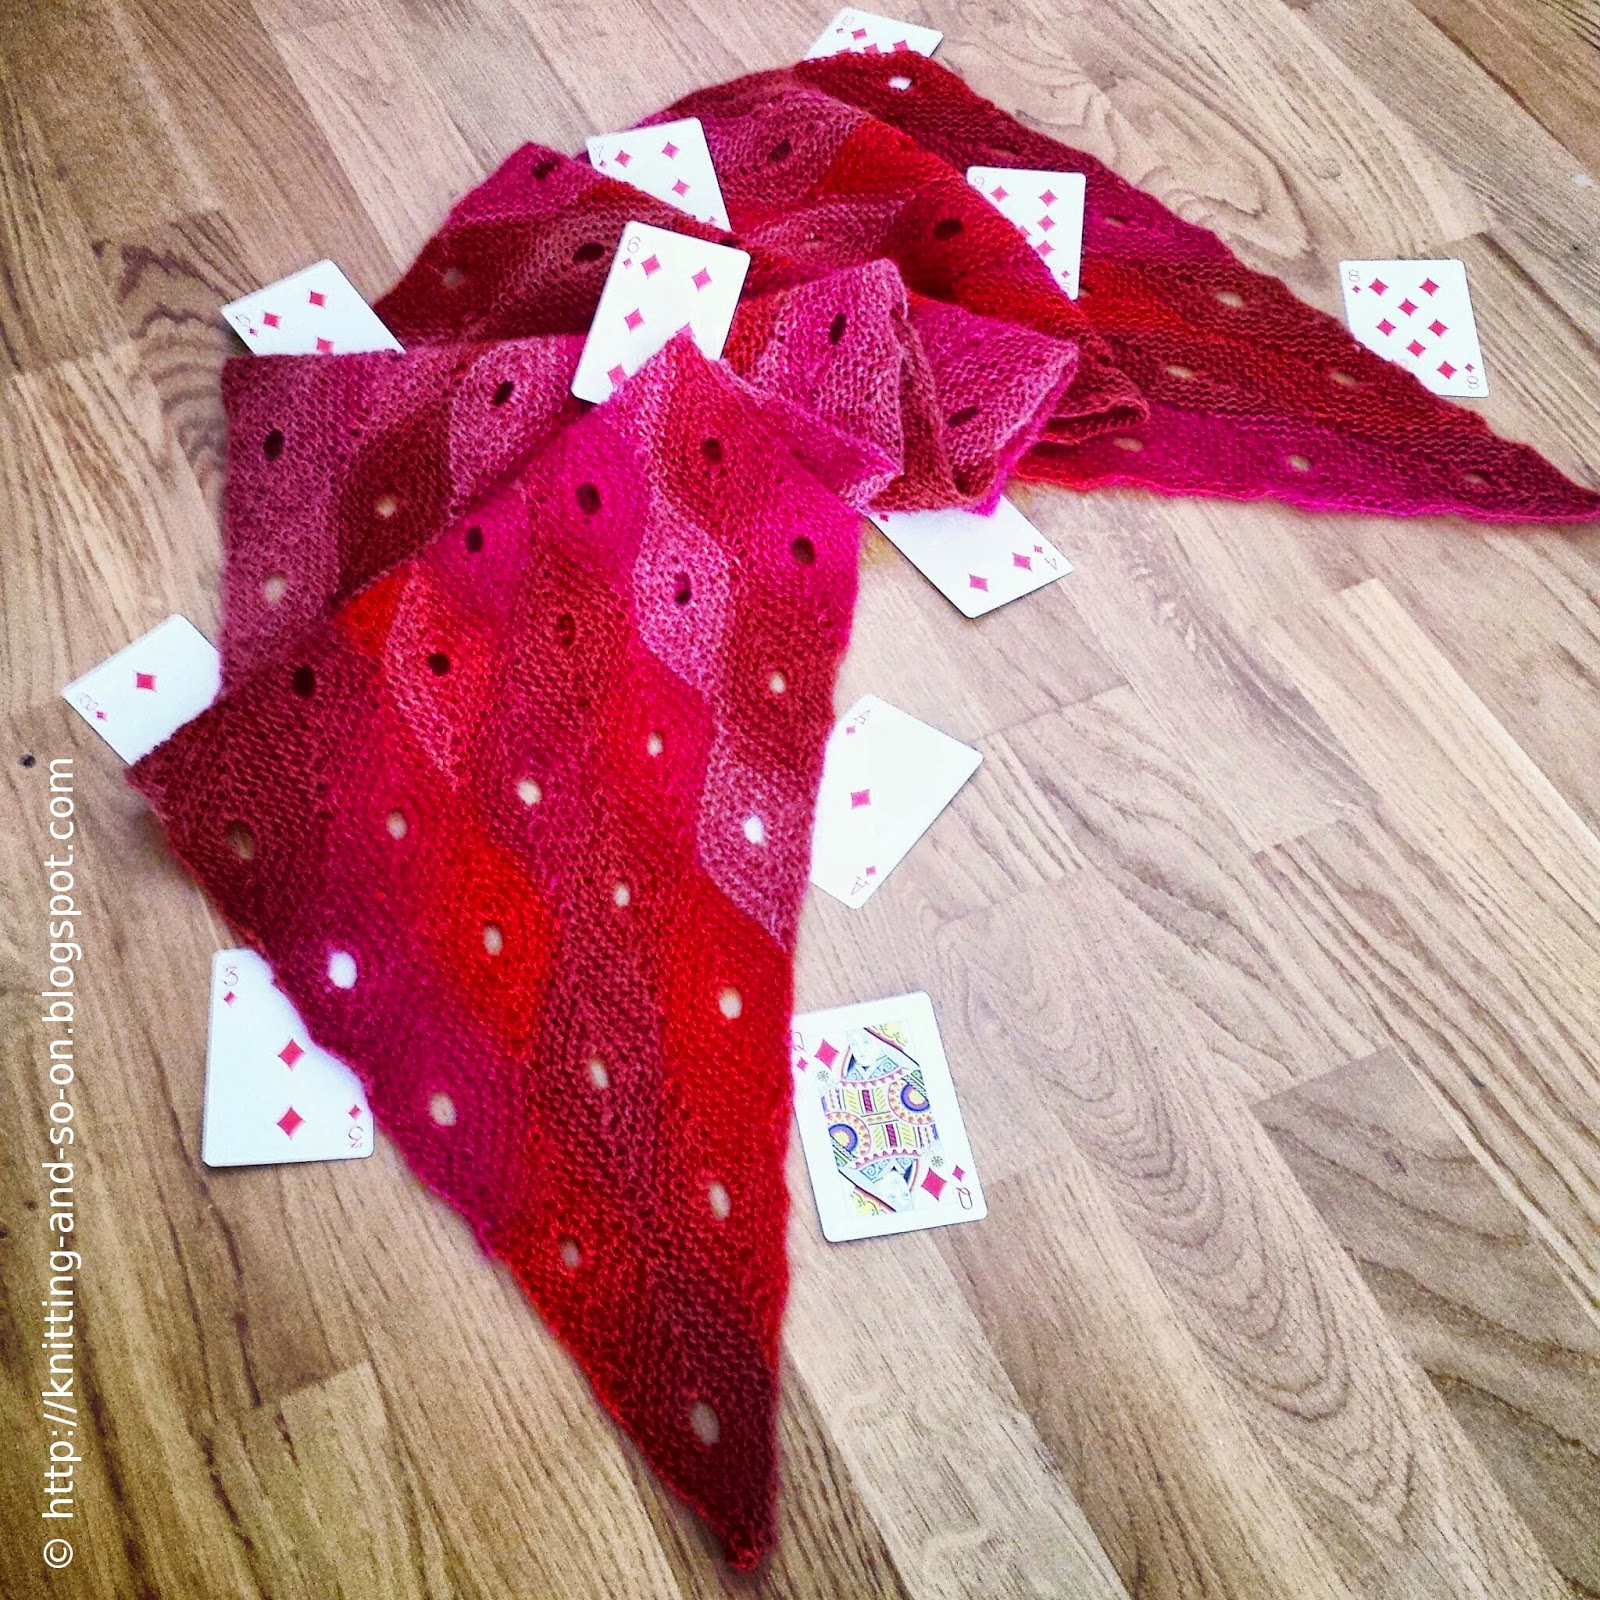 Queen of Diamonds - free scarf knitting pattern